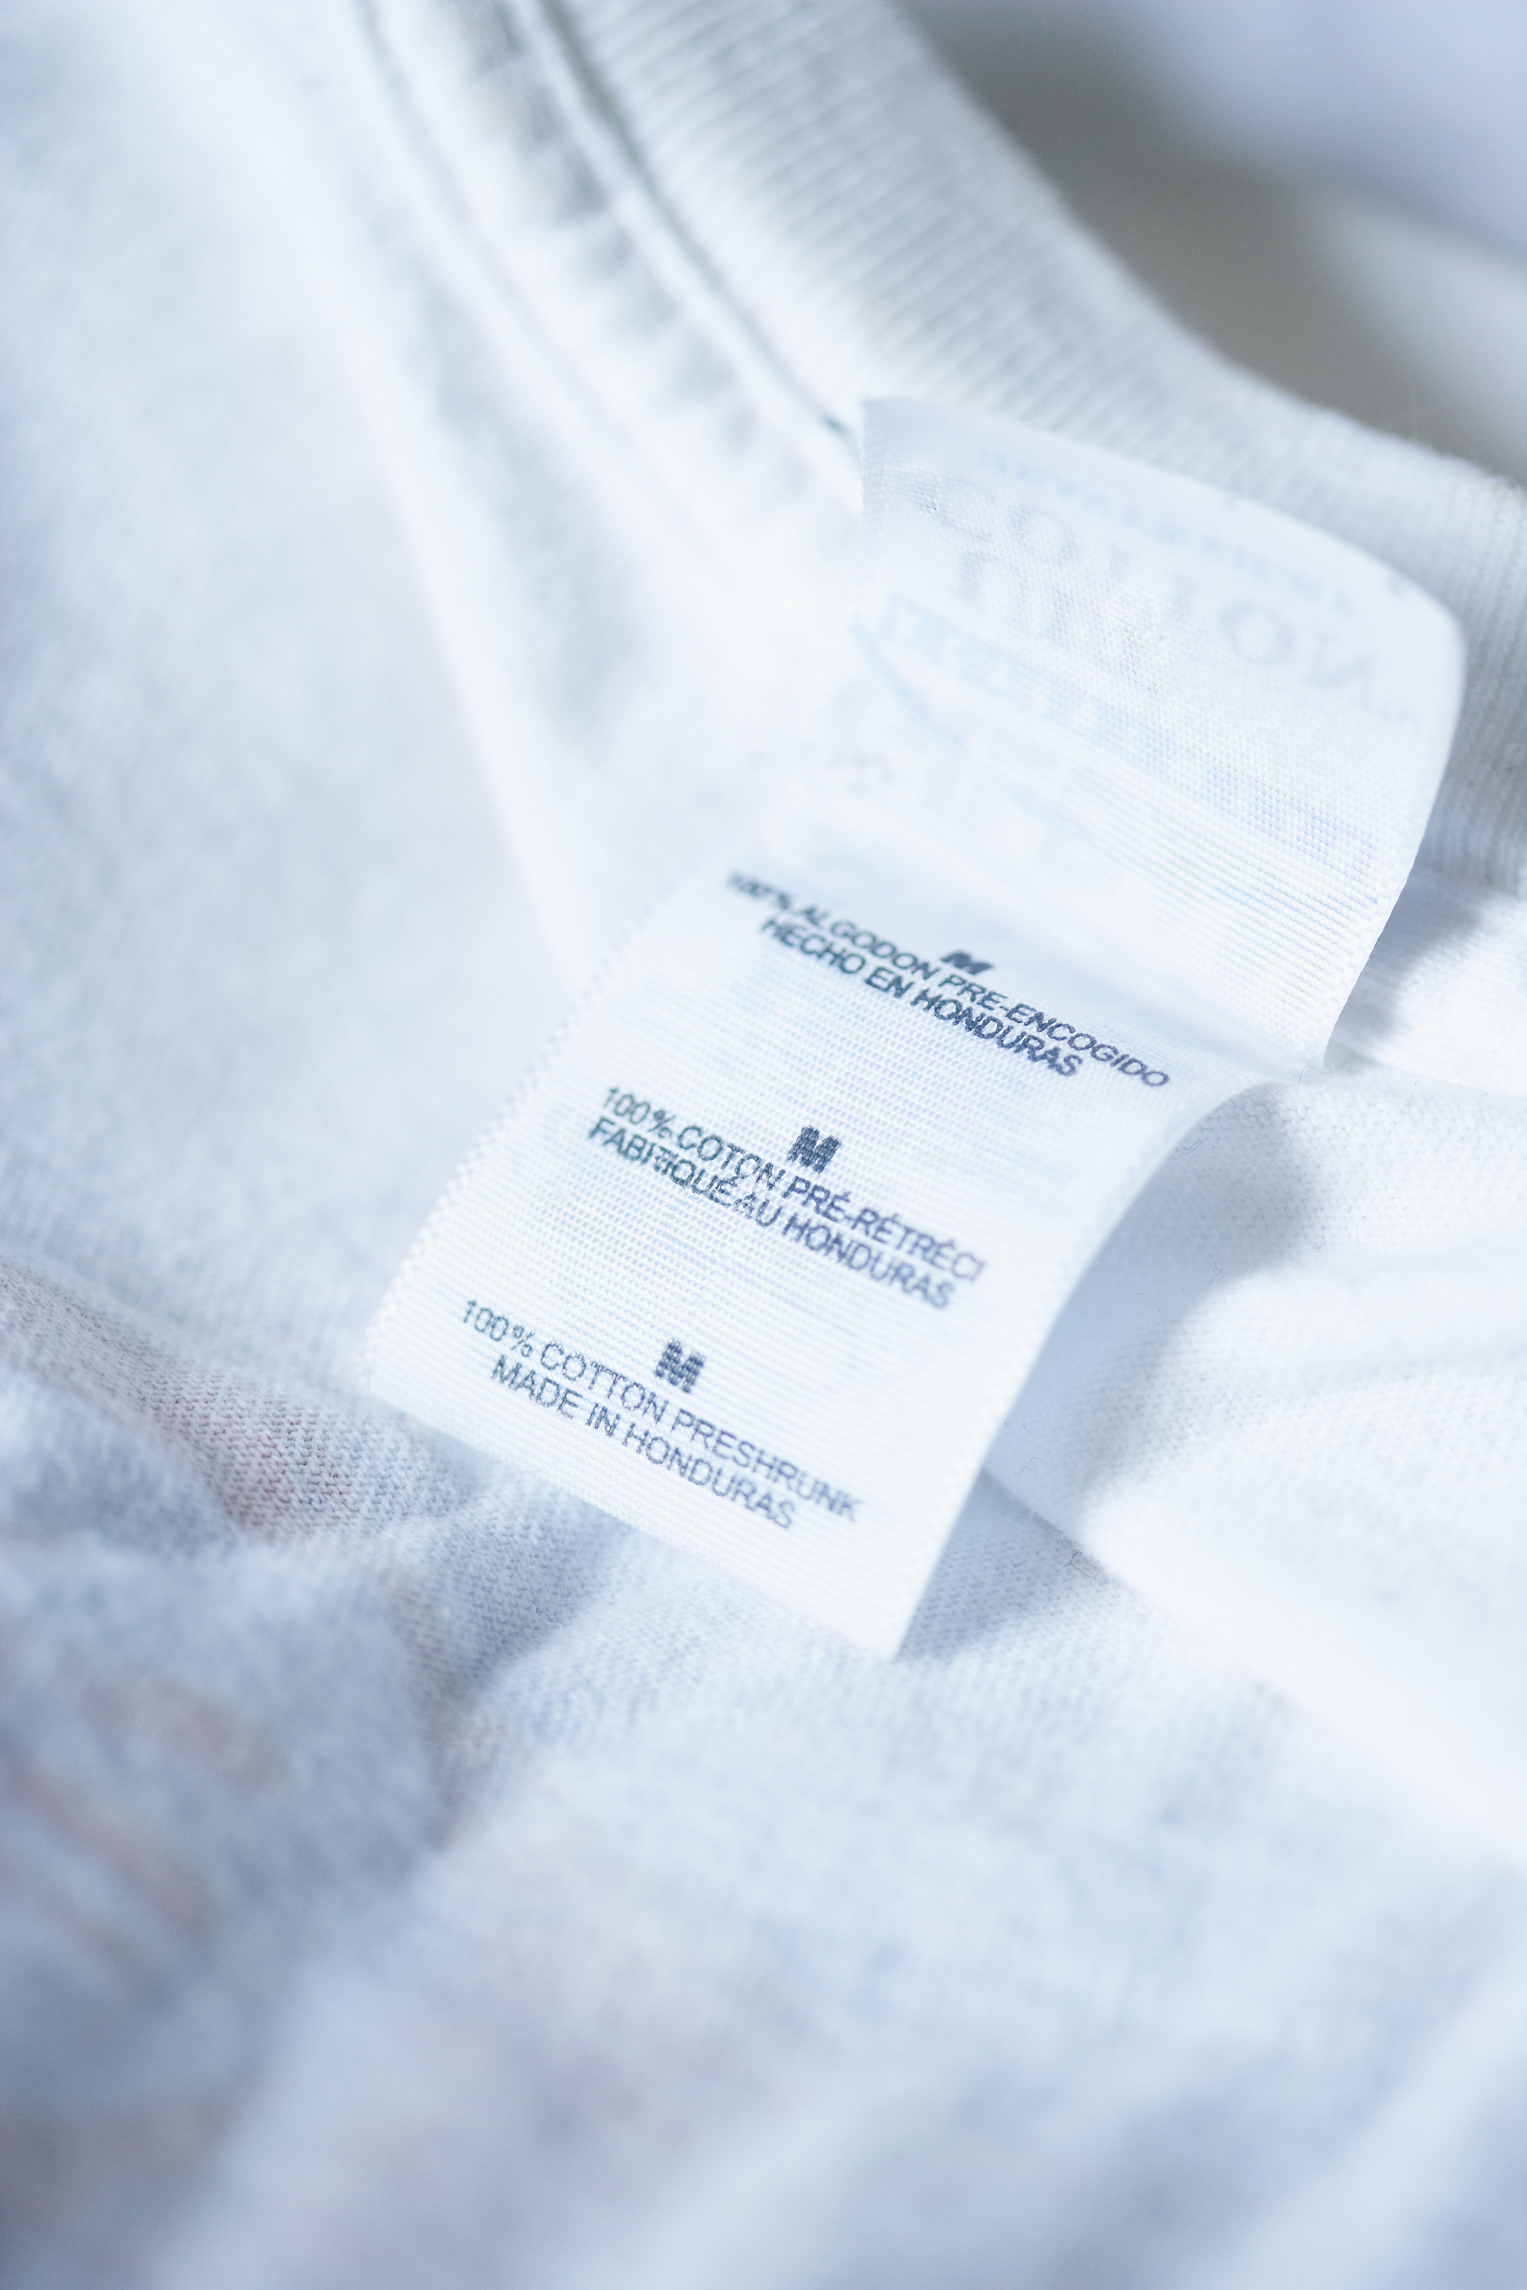 How To Shrink Cotton Shirts In Boiling Water Our